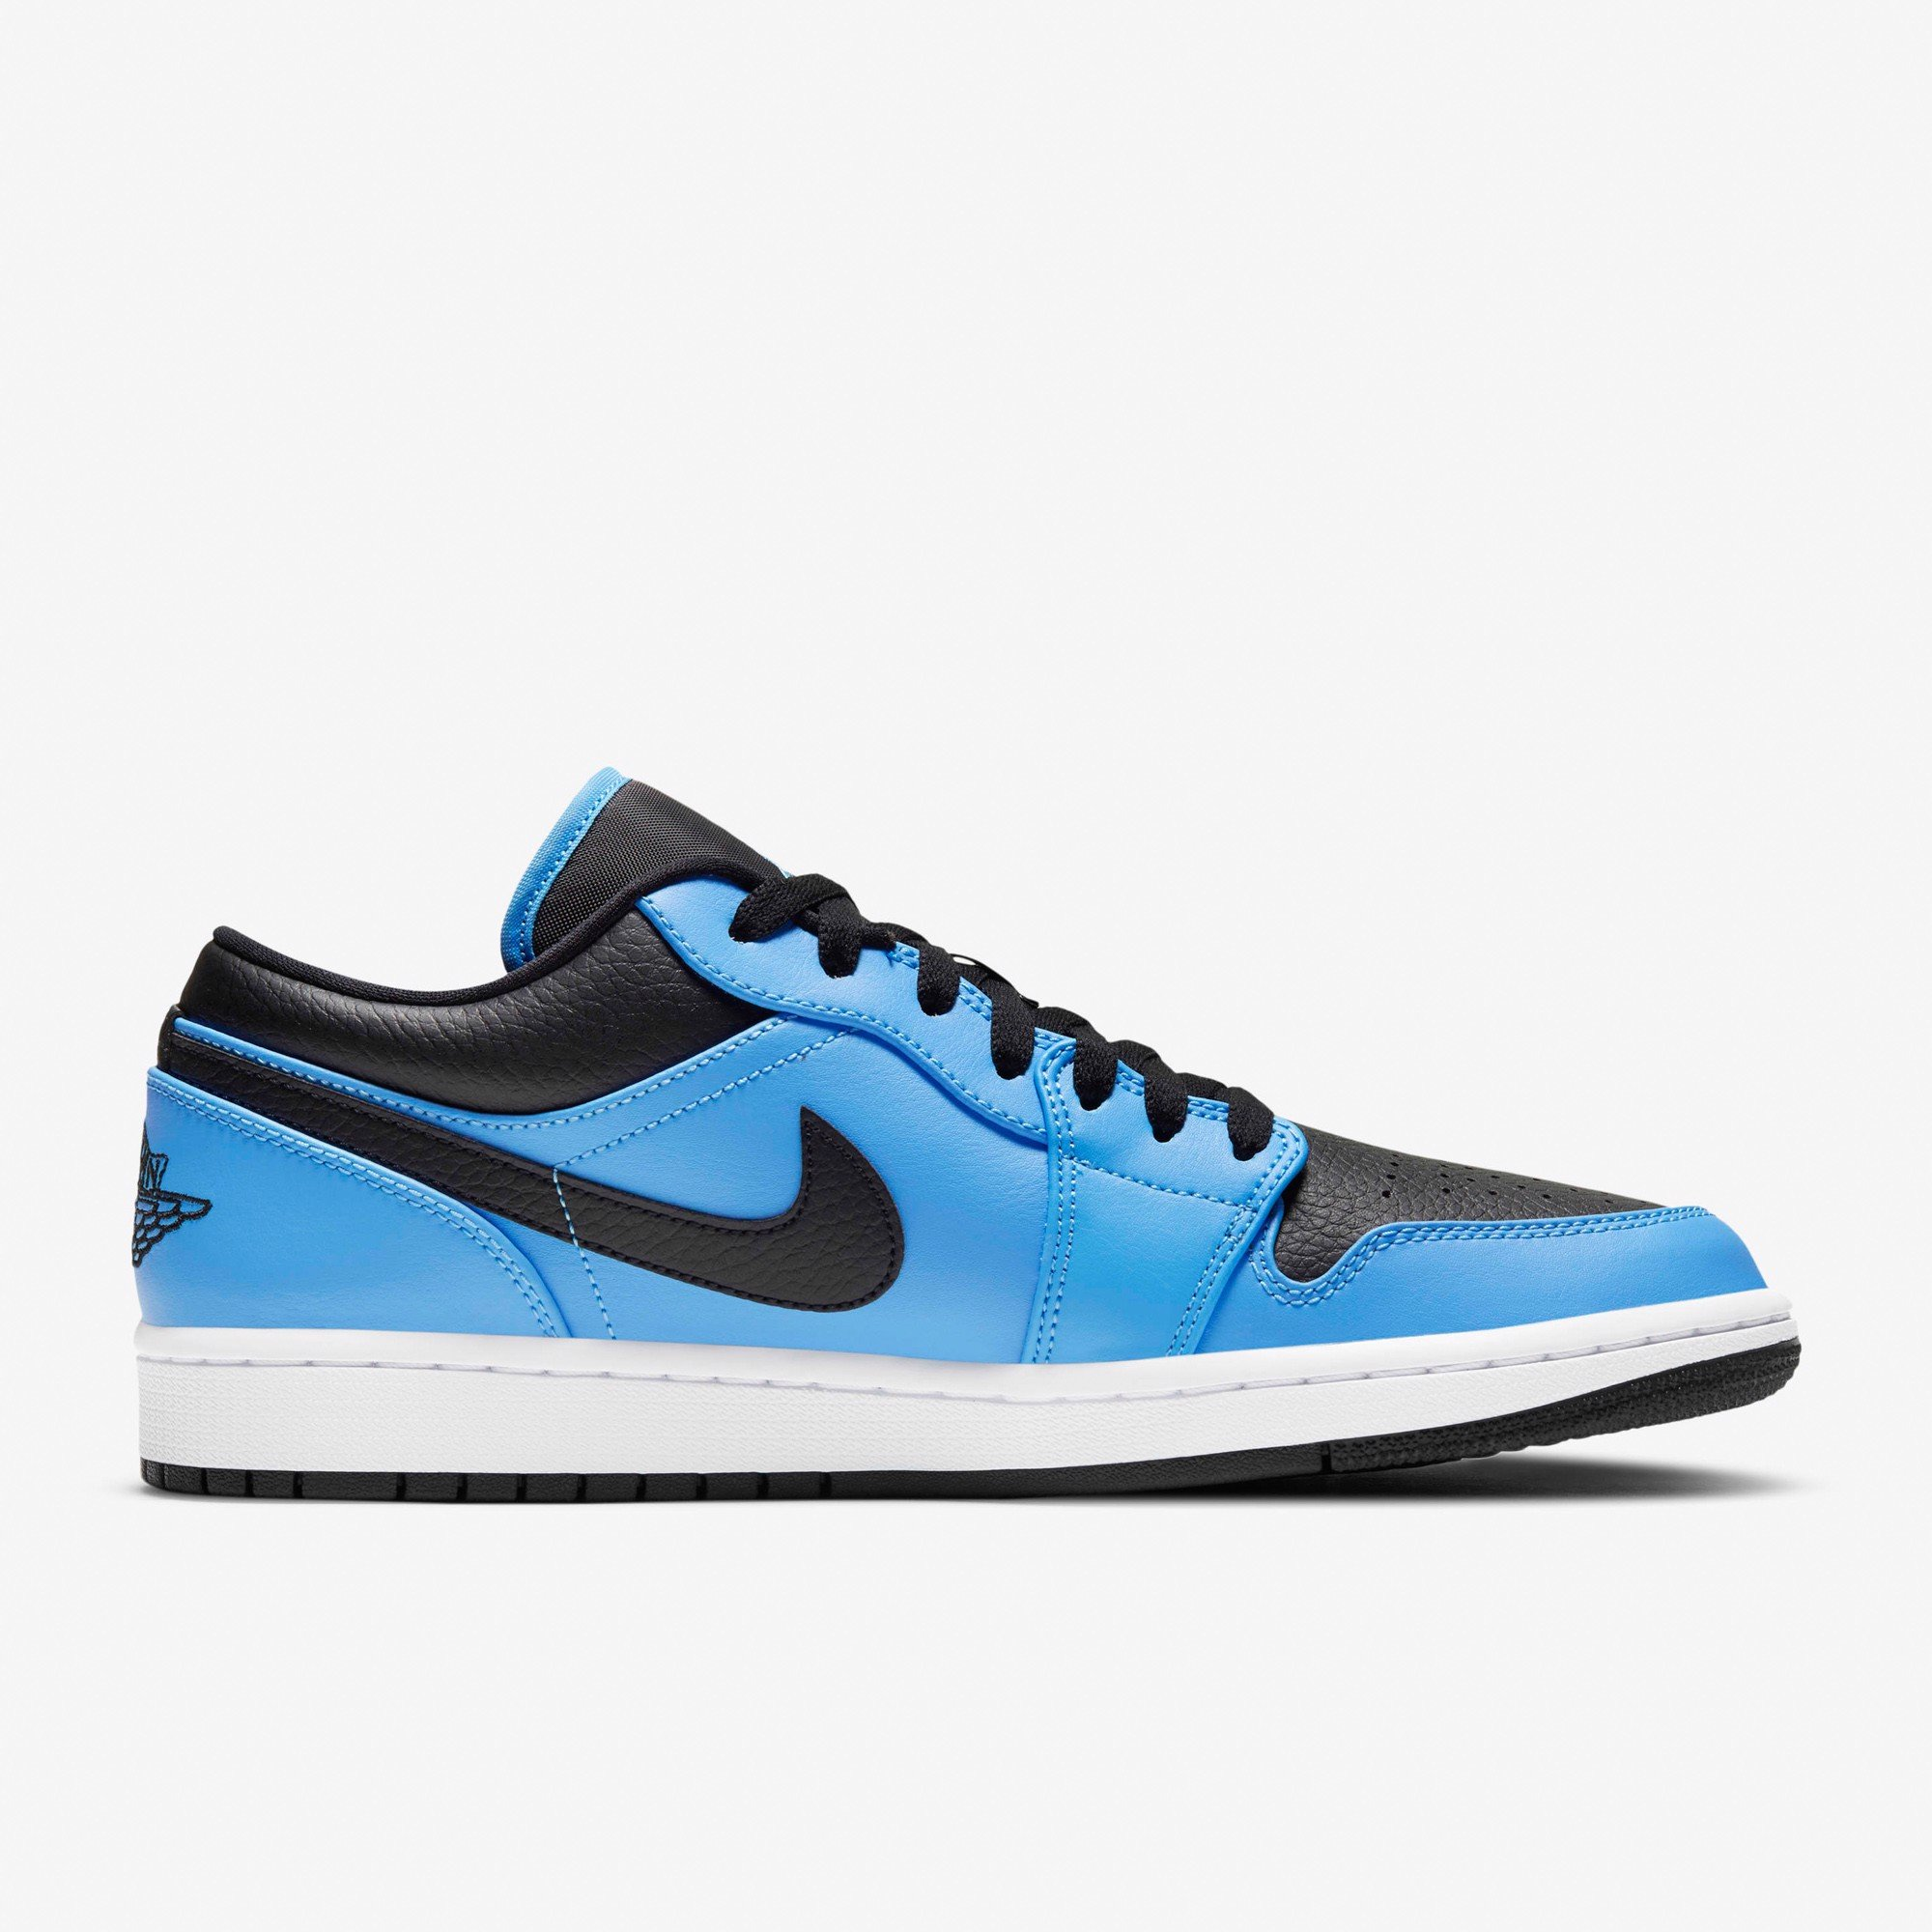 Air Jordan 1 Low - University Blue